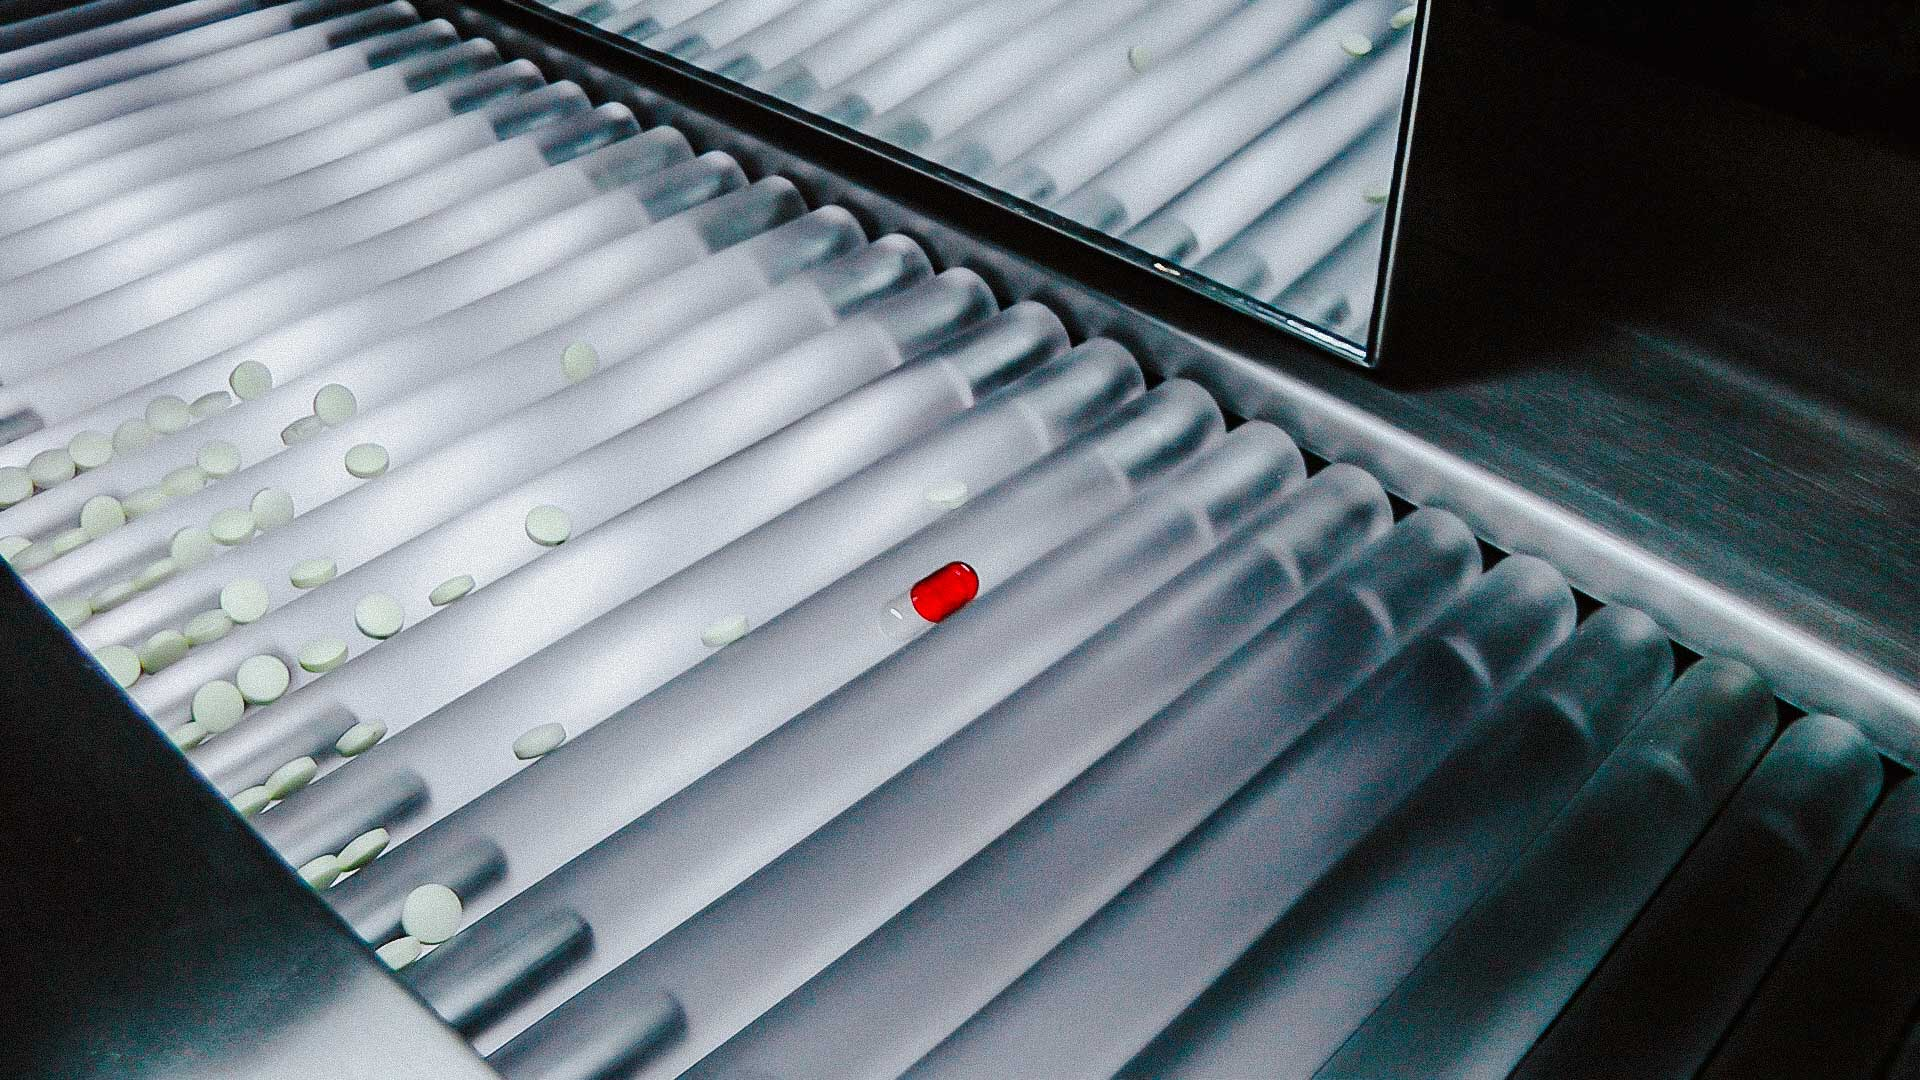 Automatic illuminated table for visual quality control of solid gelatin capsules and tablets